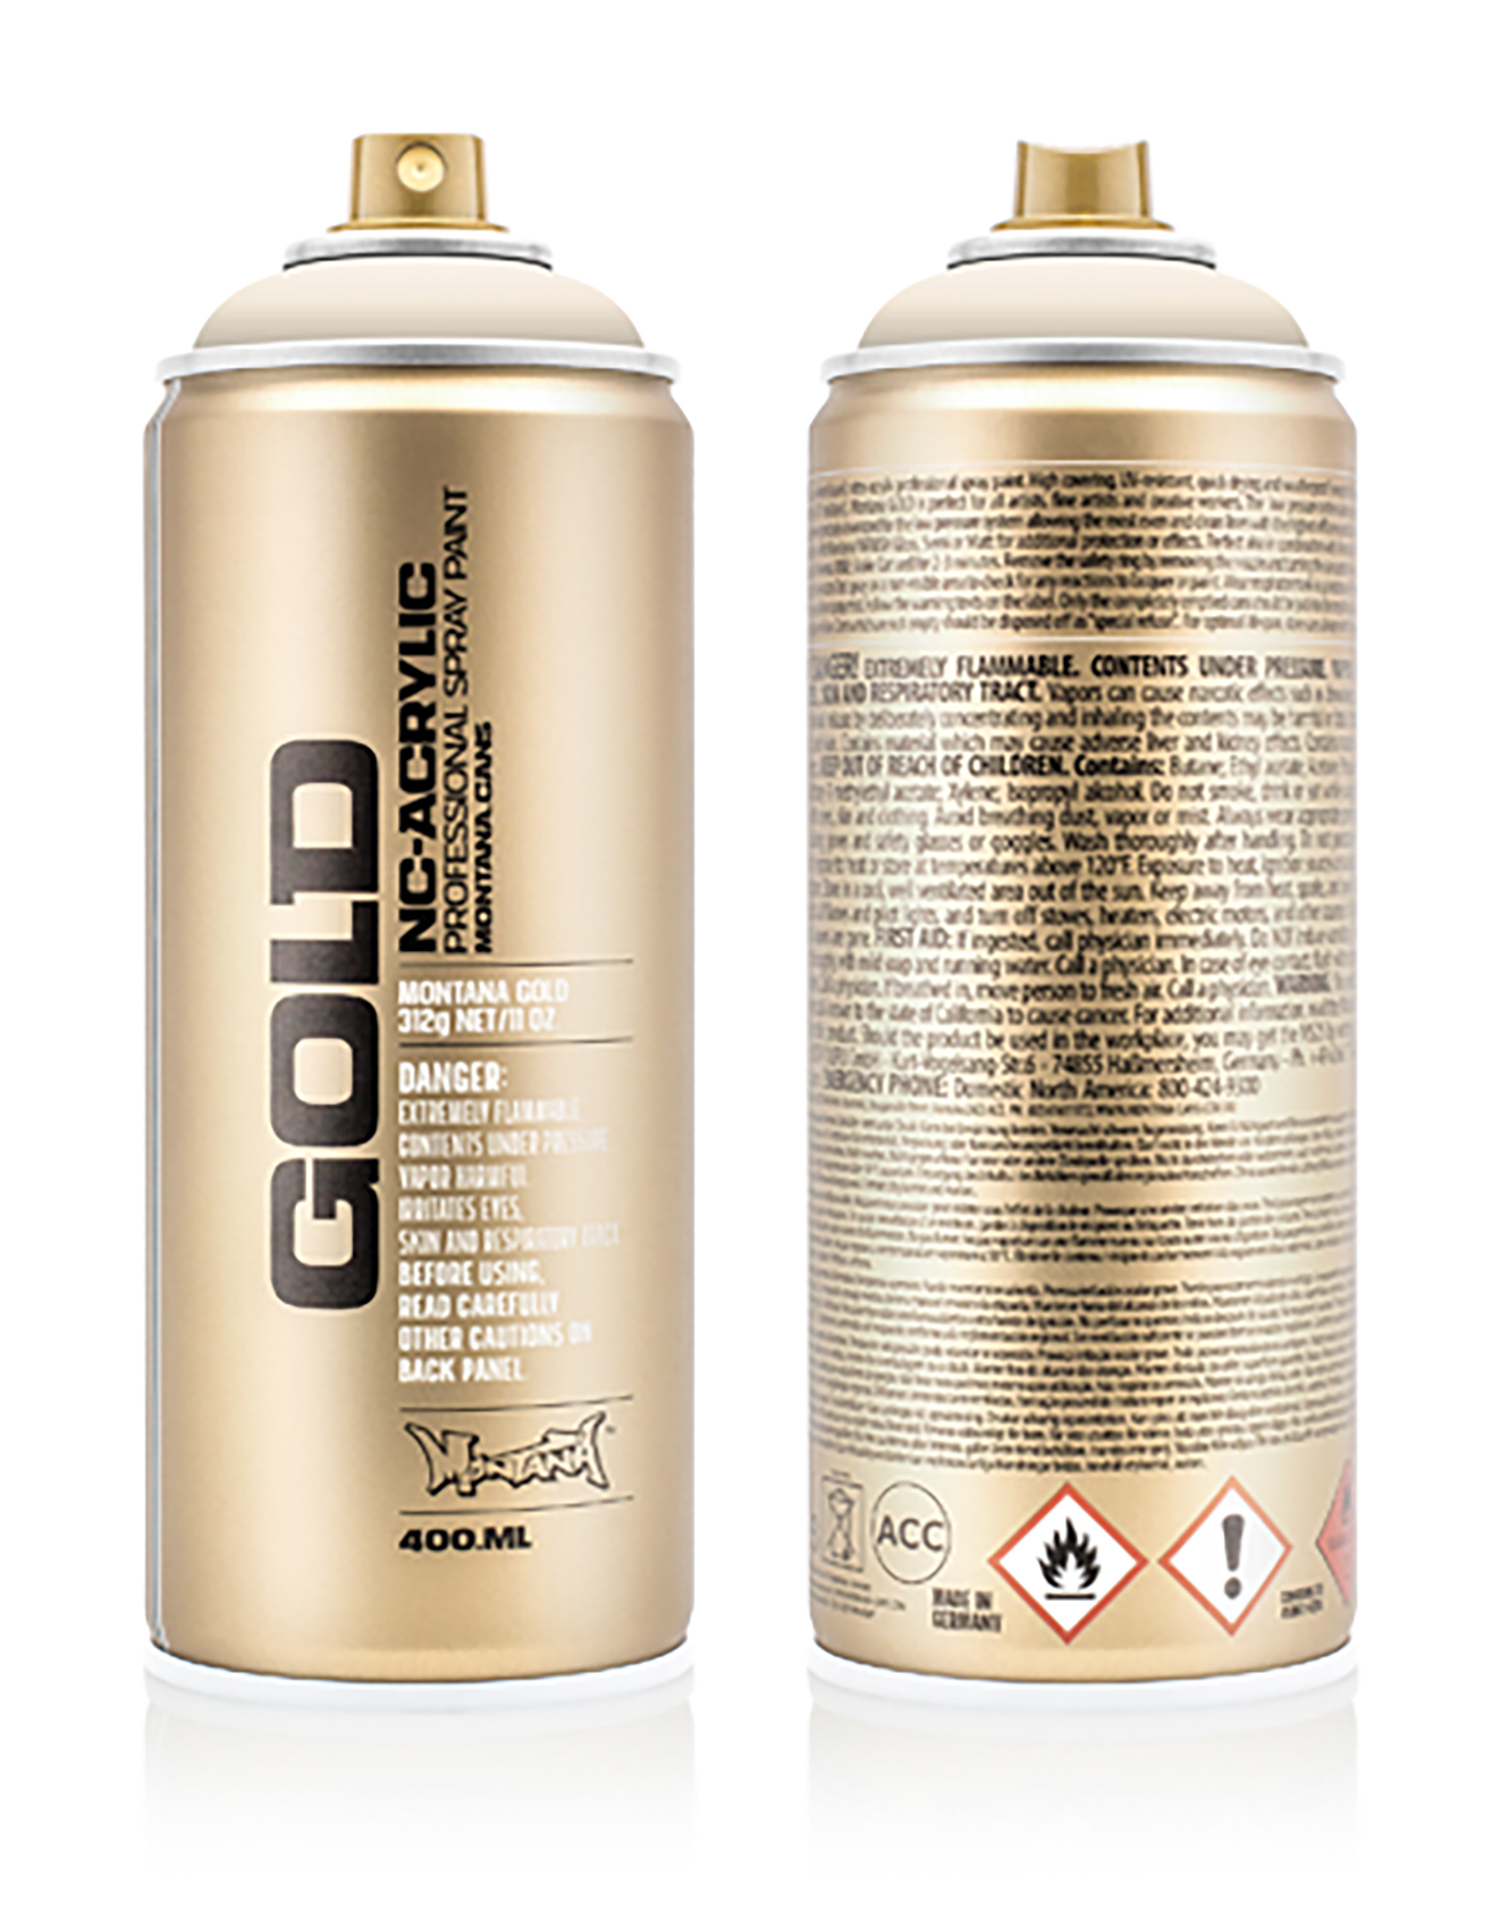 MONTANA-GOLD-SPRAY-400ML-G-1400